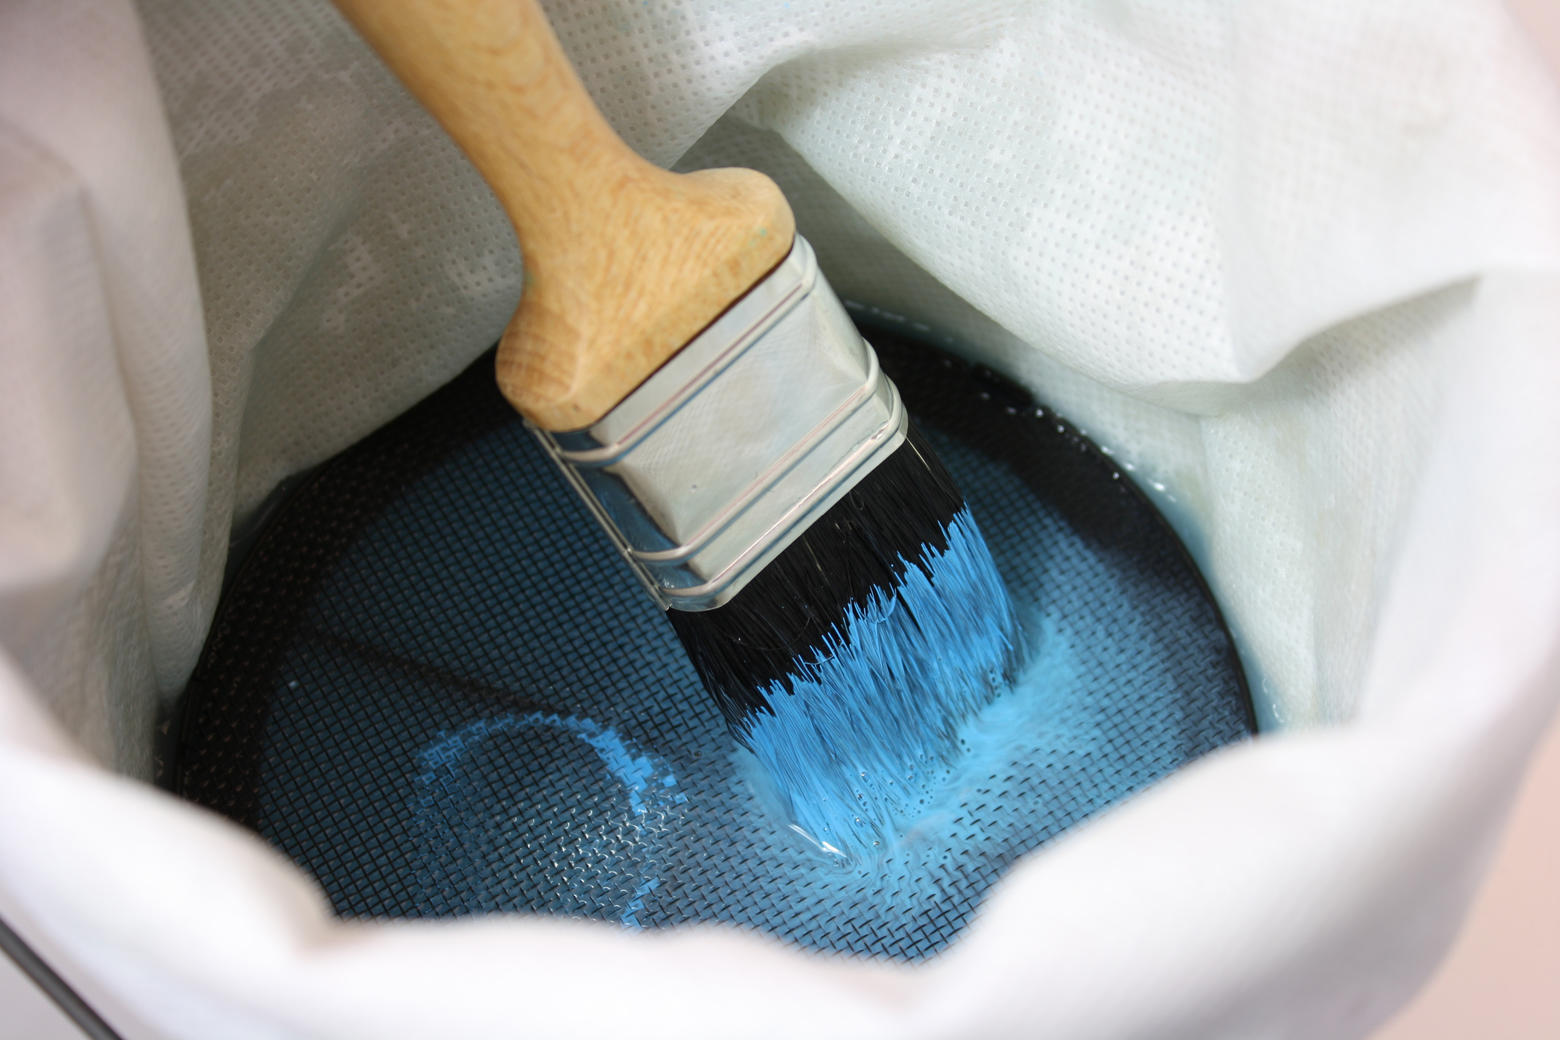 Wipe the brush firmly across the filter for around 20 seconds.